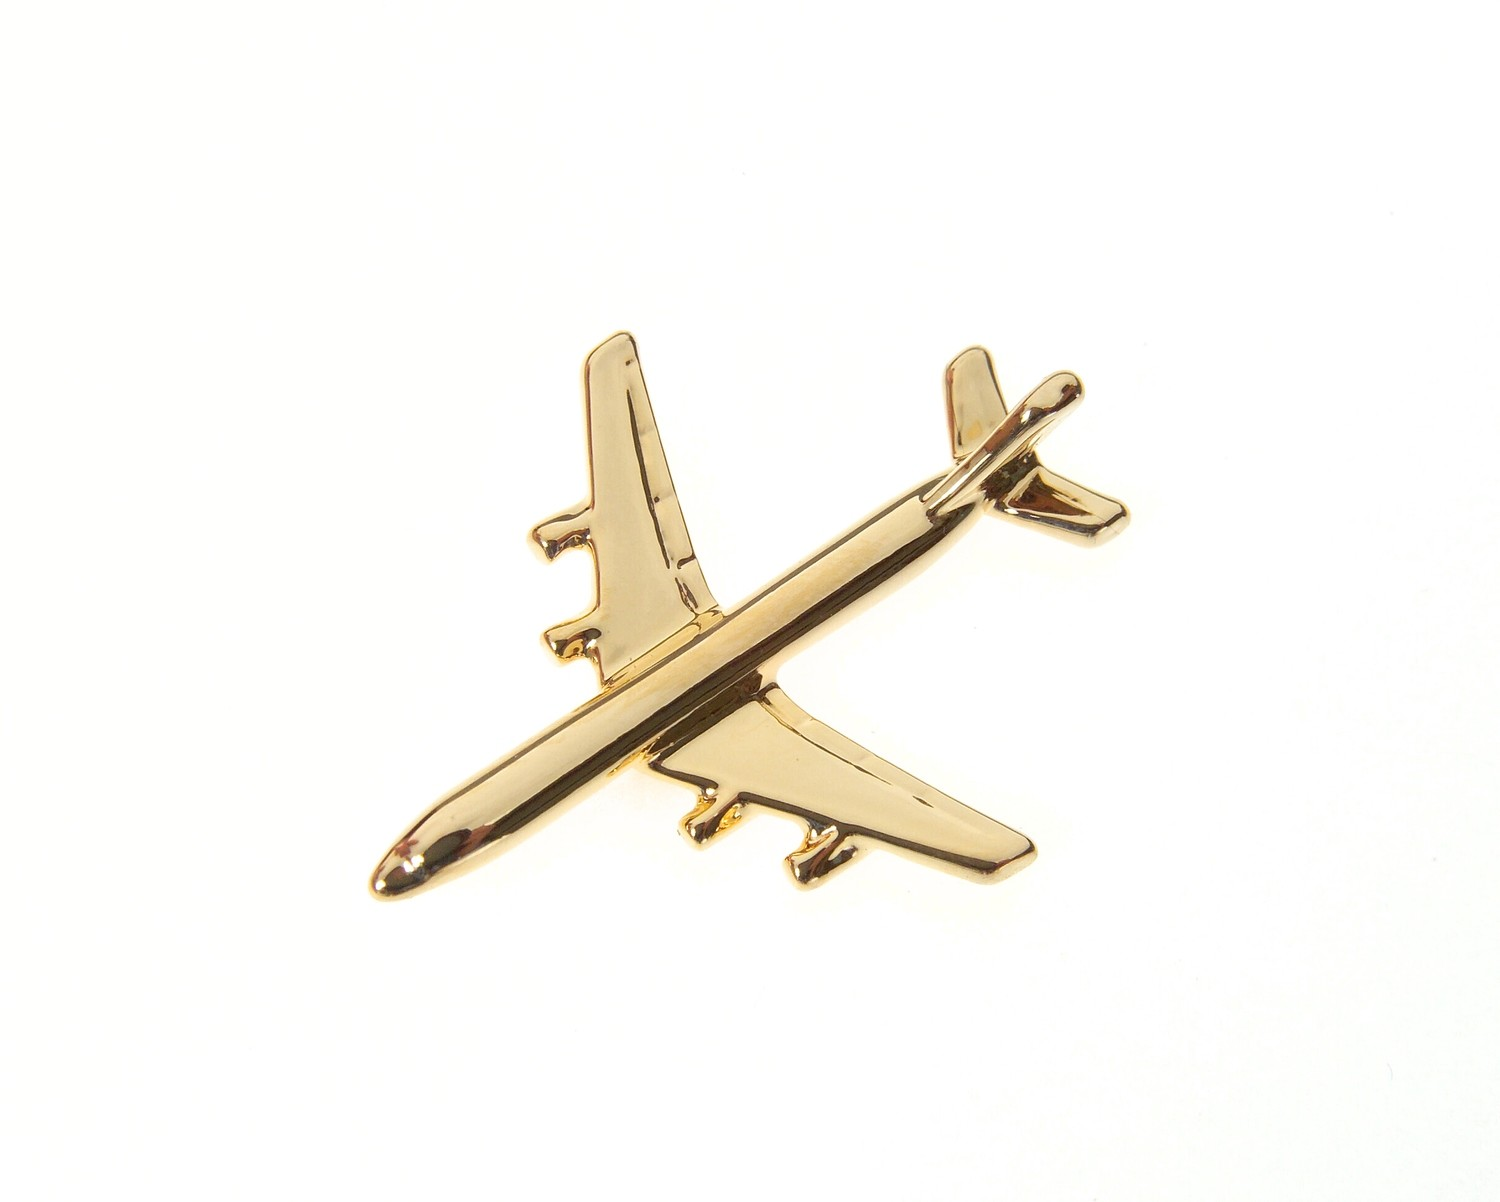 DC8 Gold Plated Tie / Lapel Pin